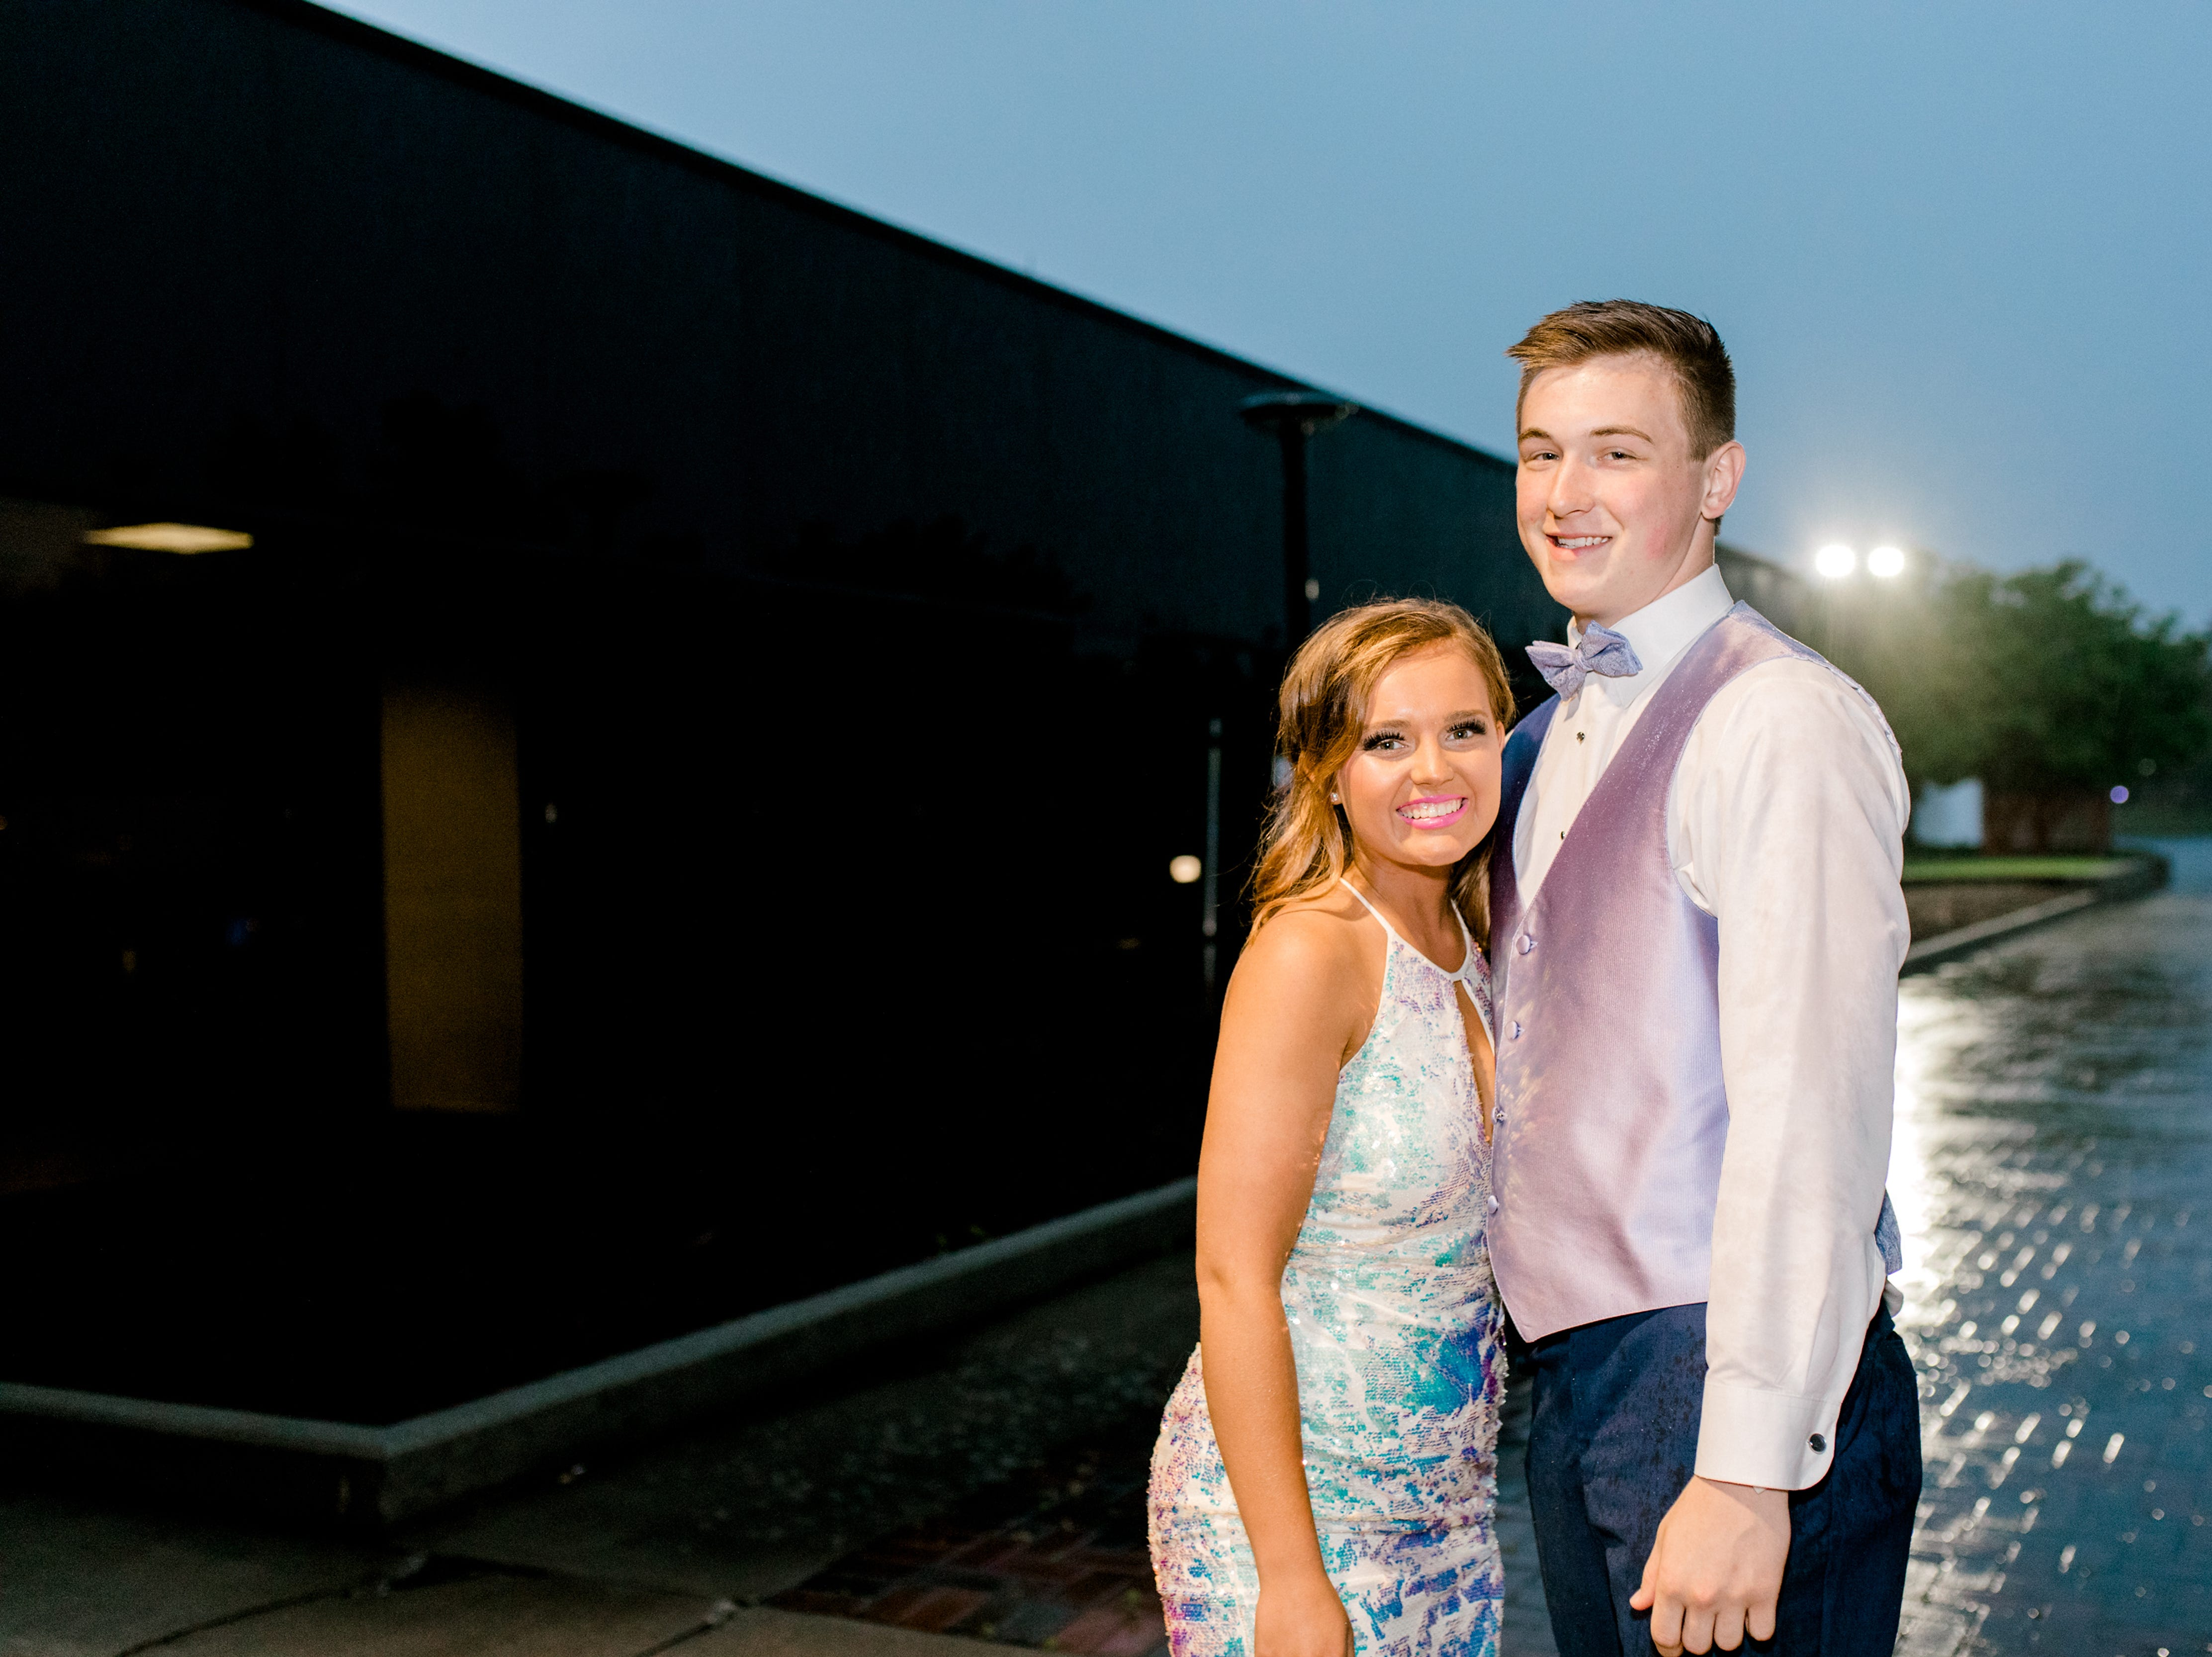 Easley held its Junior-Senior Prom at Fluor on Saturday, May 11, 2019.